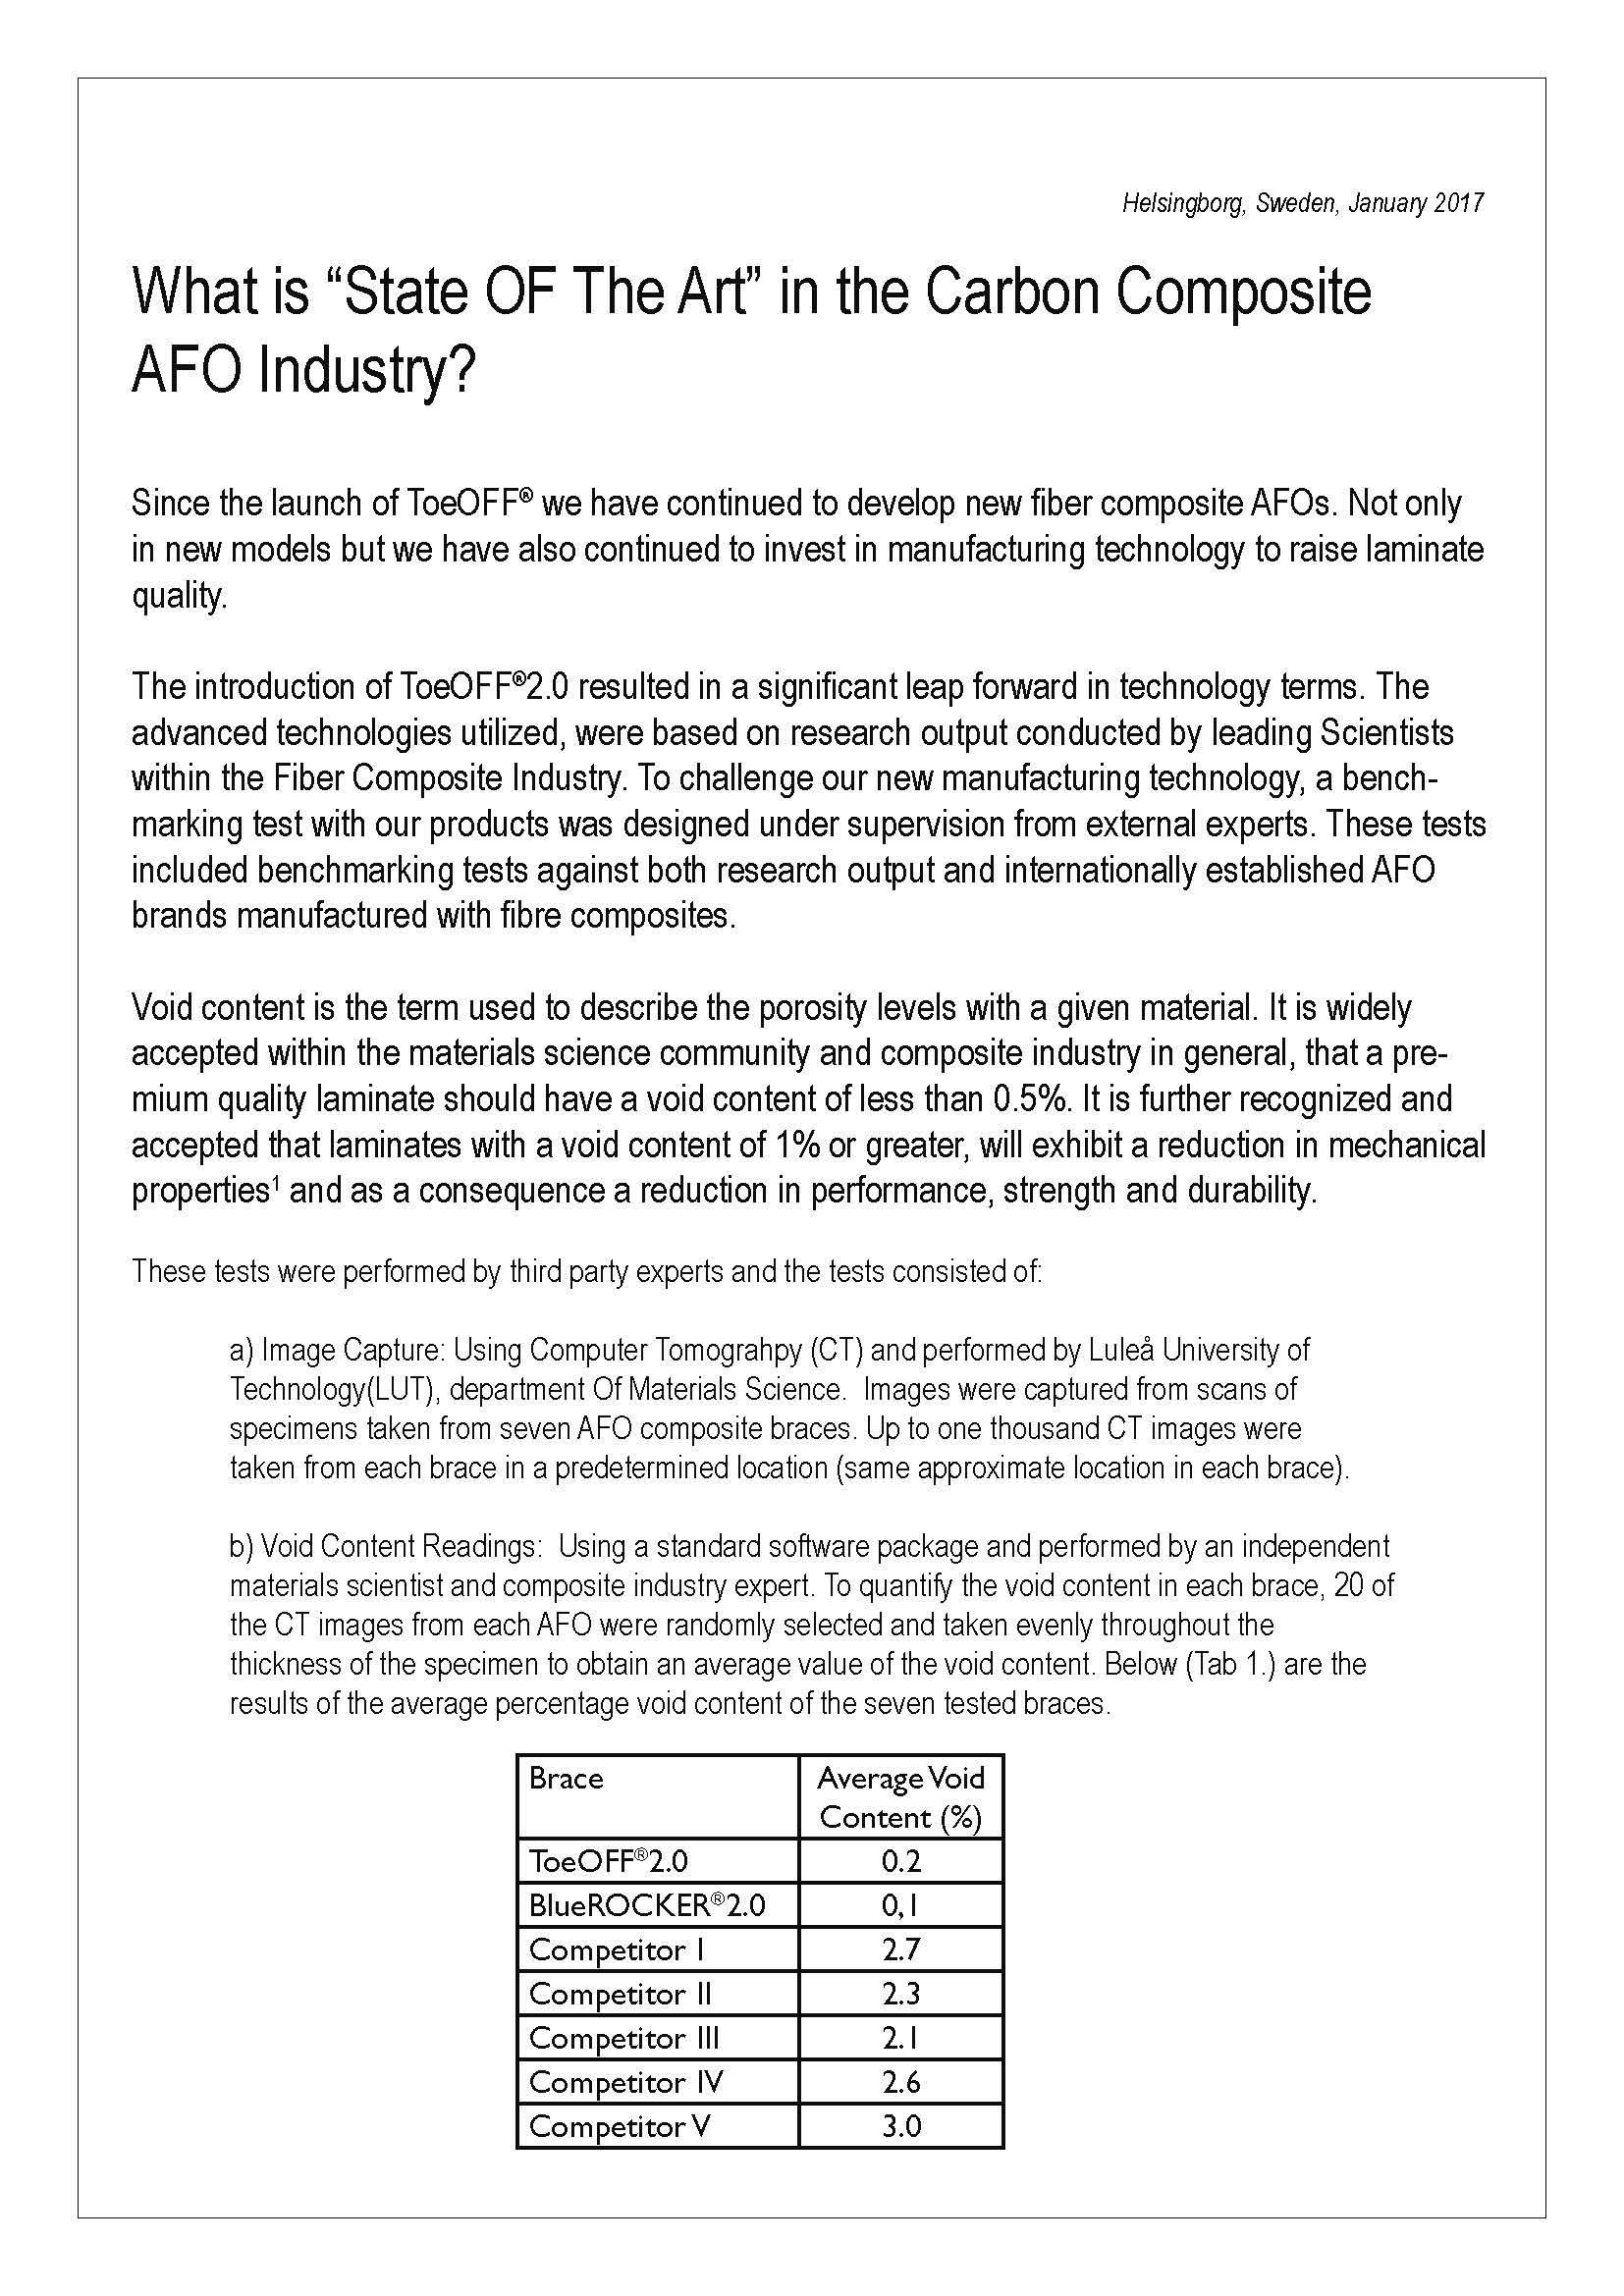 """What is """"State OF The Art"""" in the Carbon Composite AFO Industry?"""